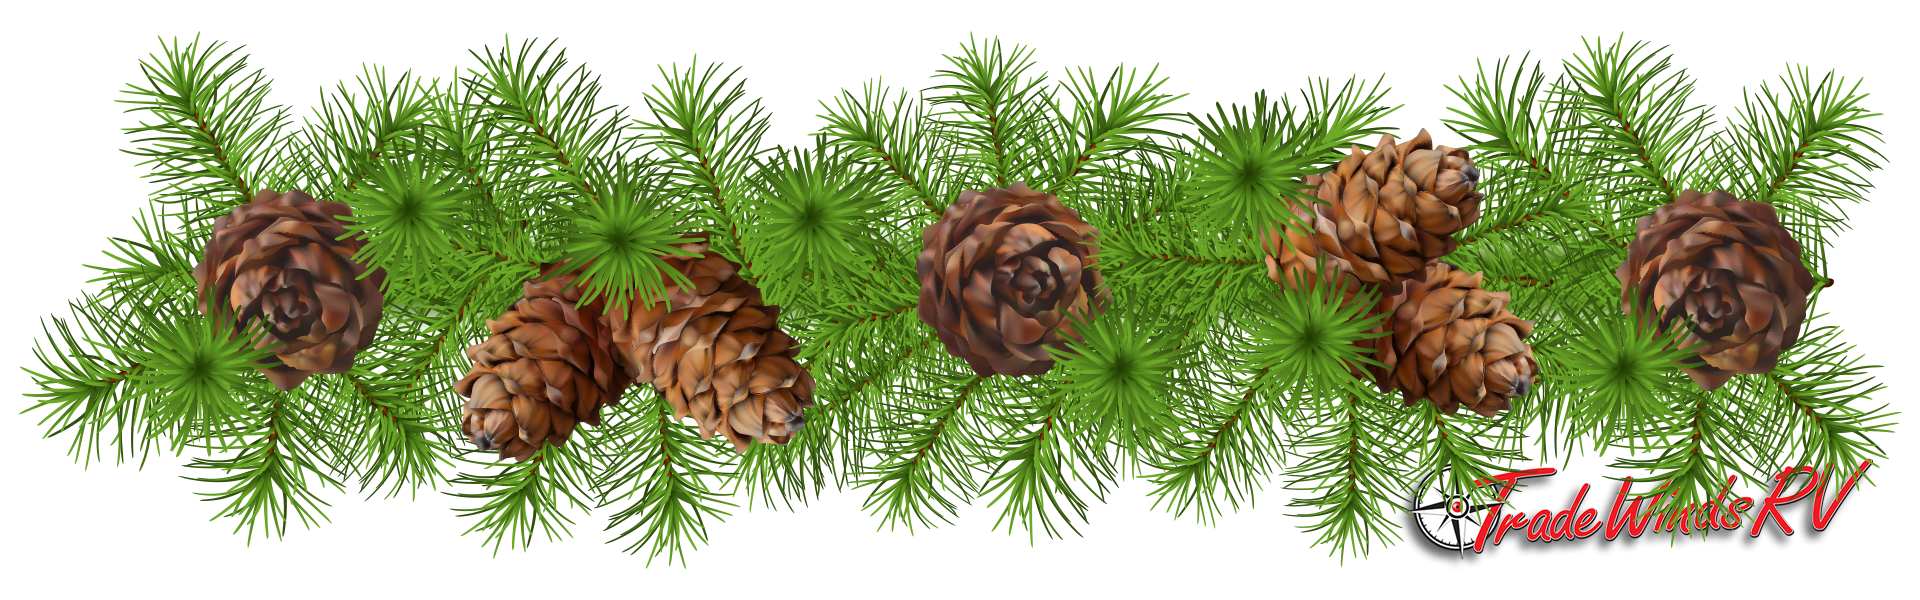 Pinecone clipart eastern white pine. Woodland decorations diy garland